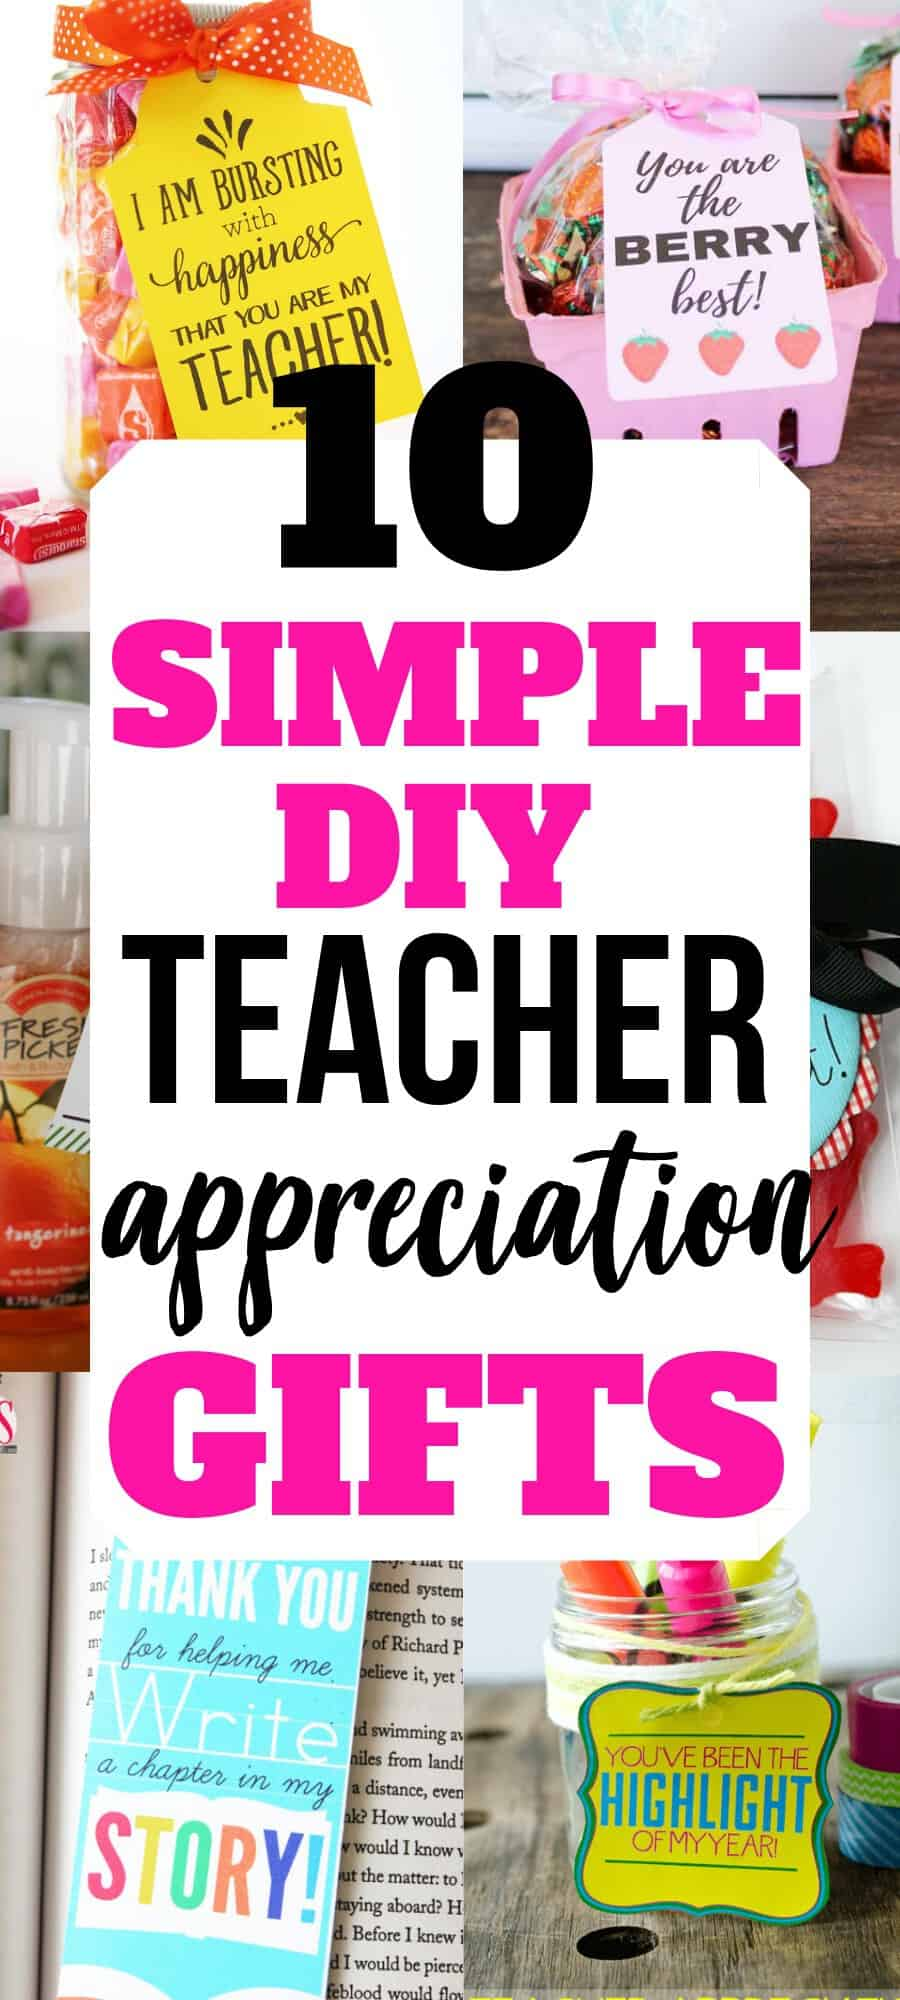 Looking for Simple DIY Teacher Appreciation Gifts? Check Out This List of 10 Great Ideas That Anyone Can Make